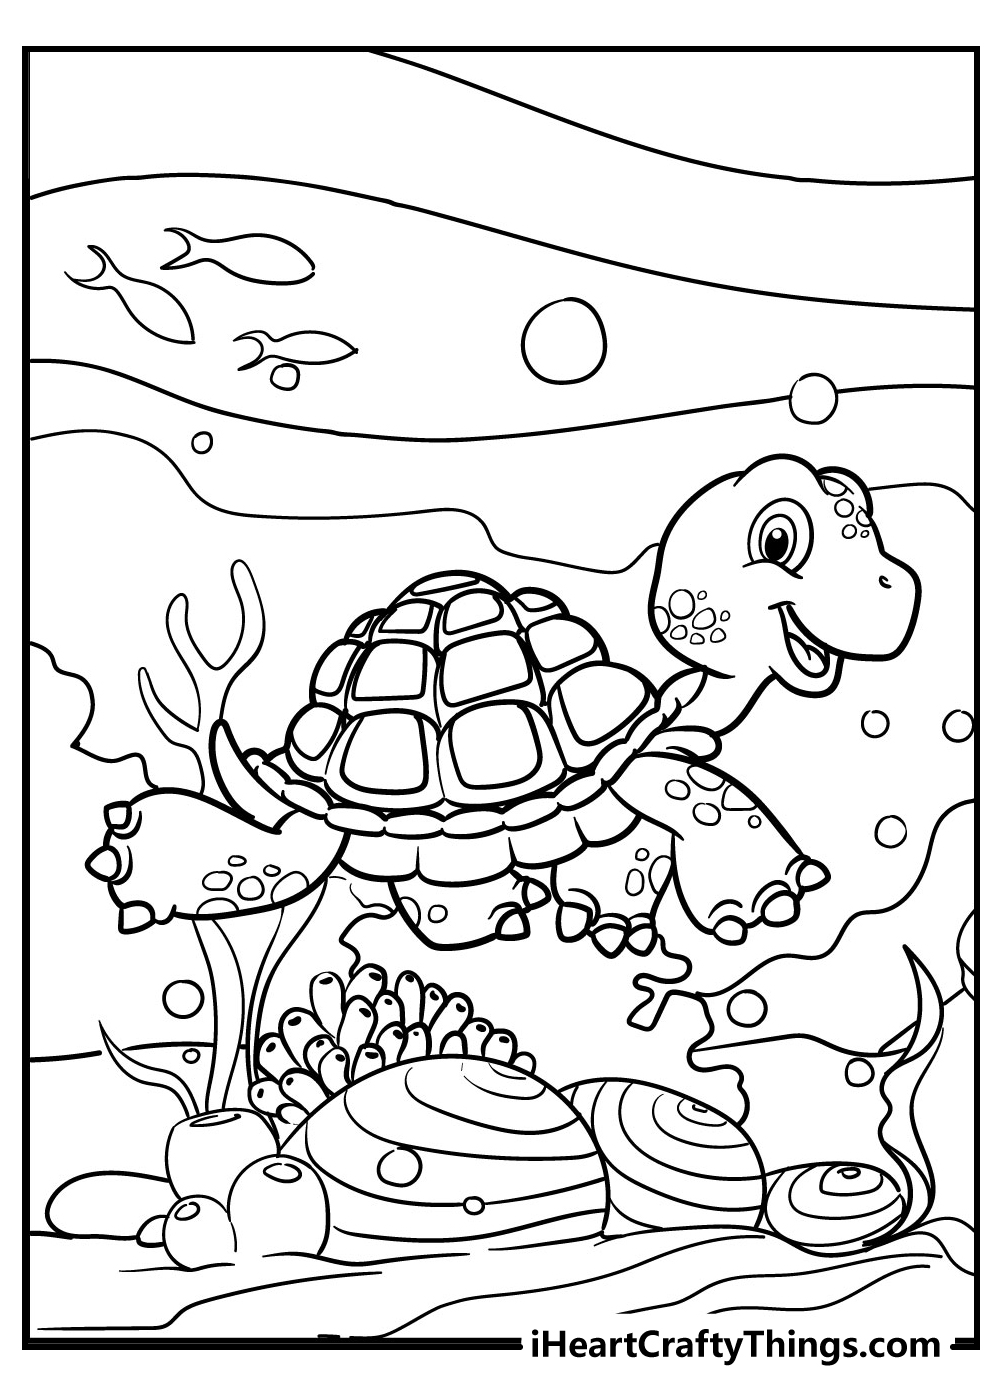 tortoise colouring pages for kids free printable